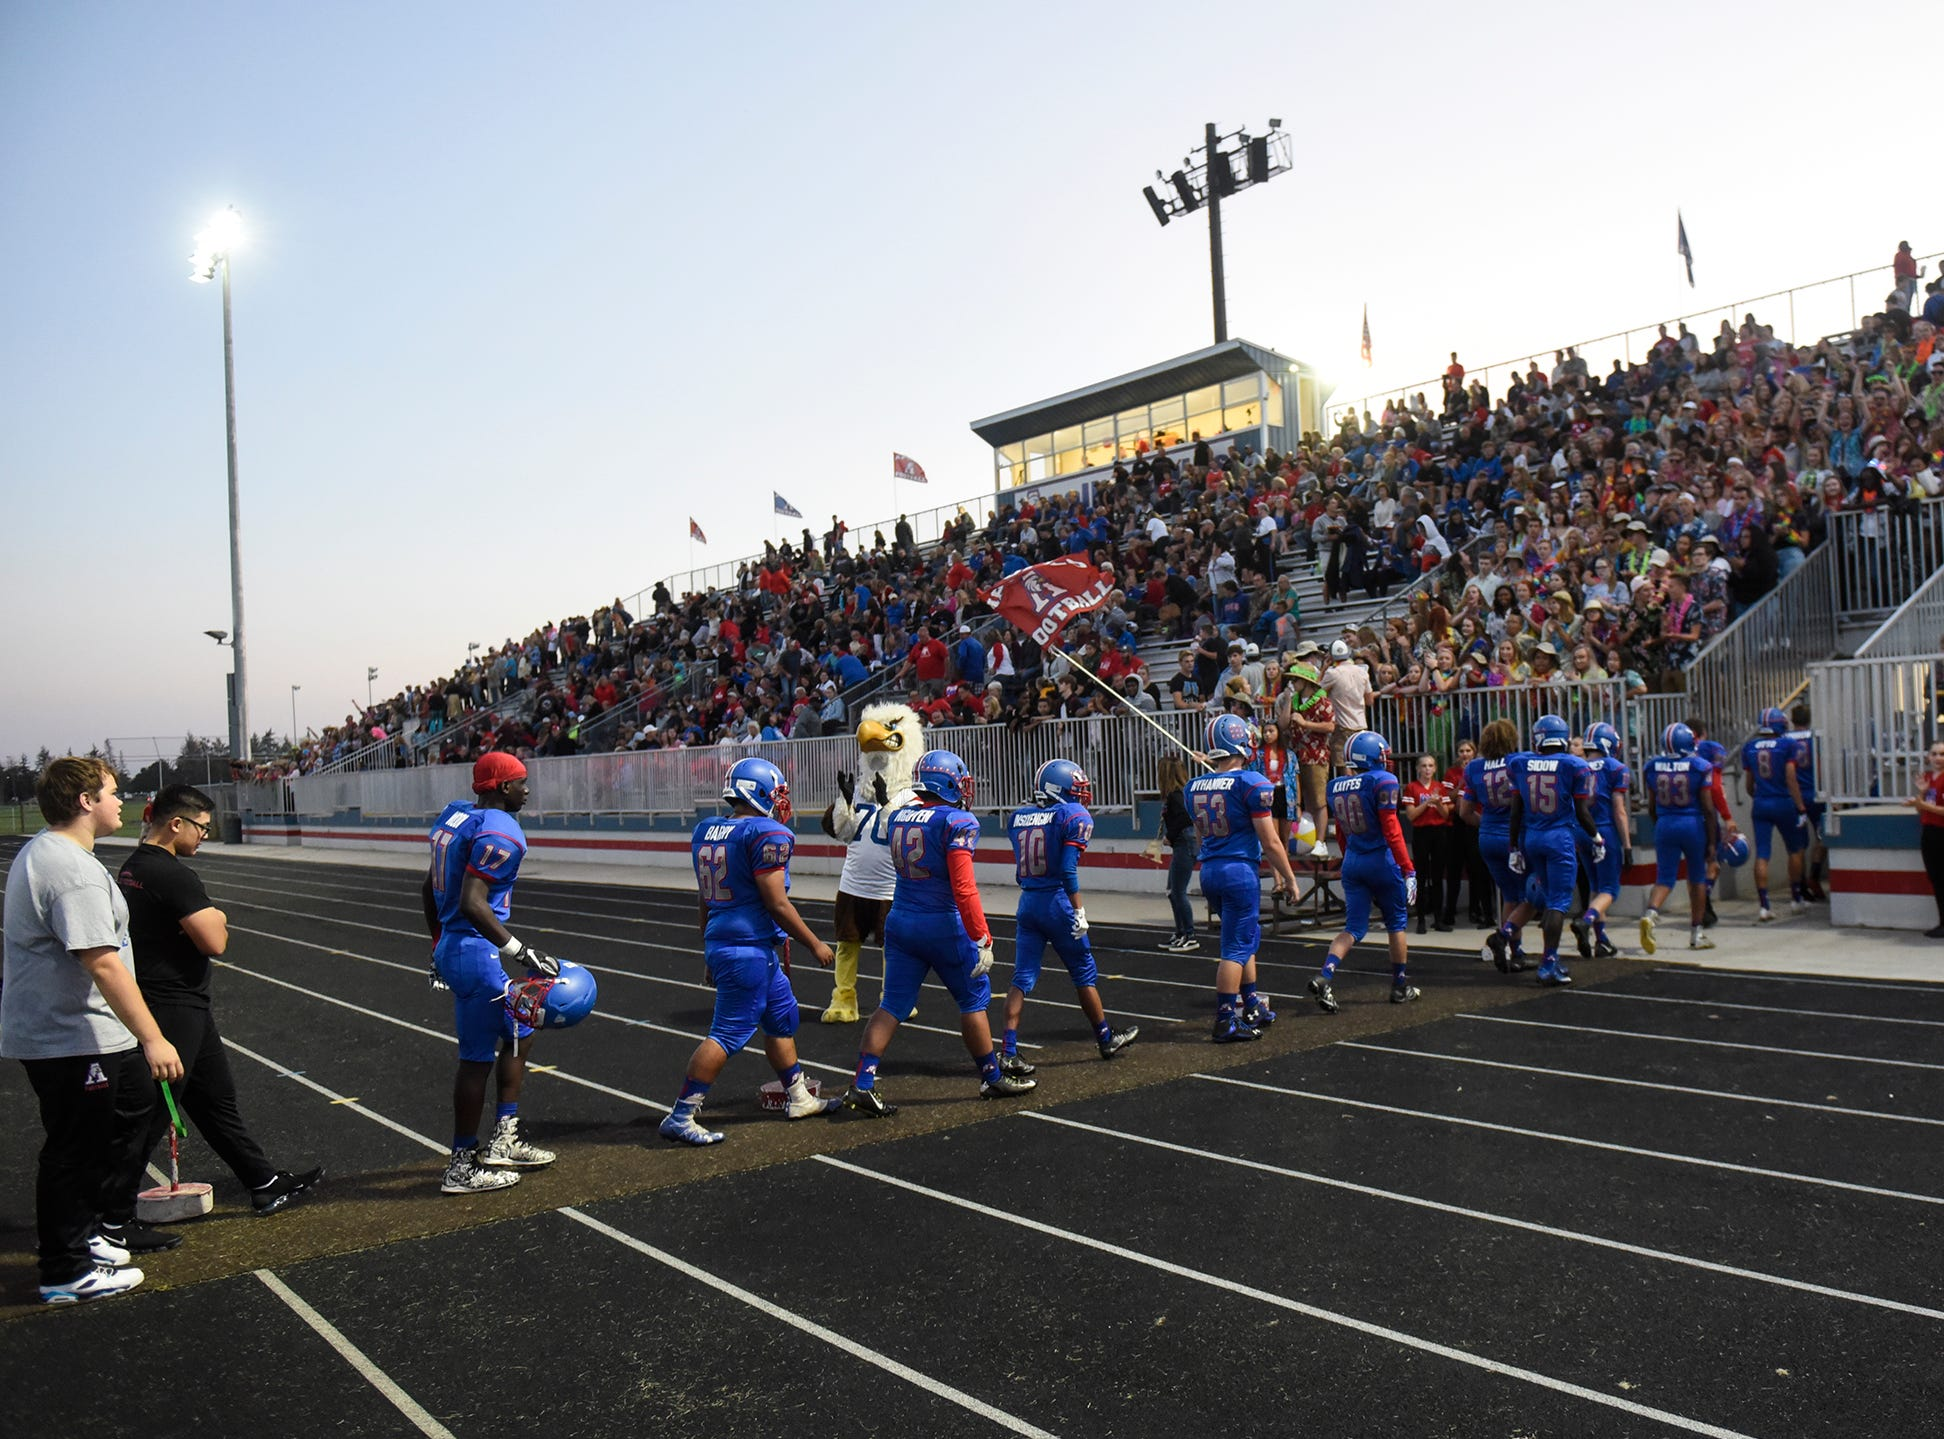 Apollo players leave the field at halftime during the Friday, Sept. 7, game at Apollo High School in St. Cloud.